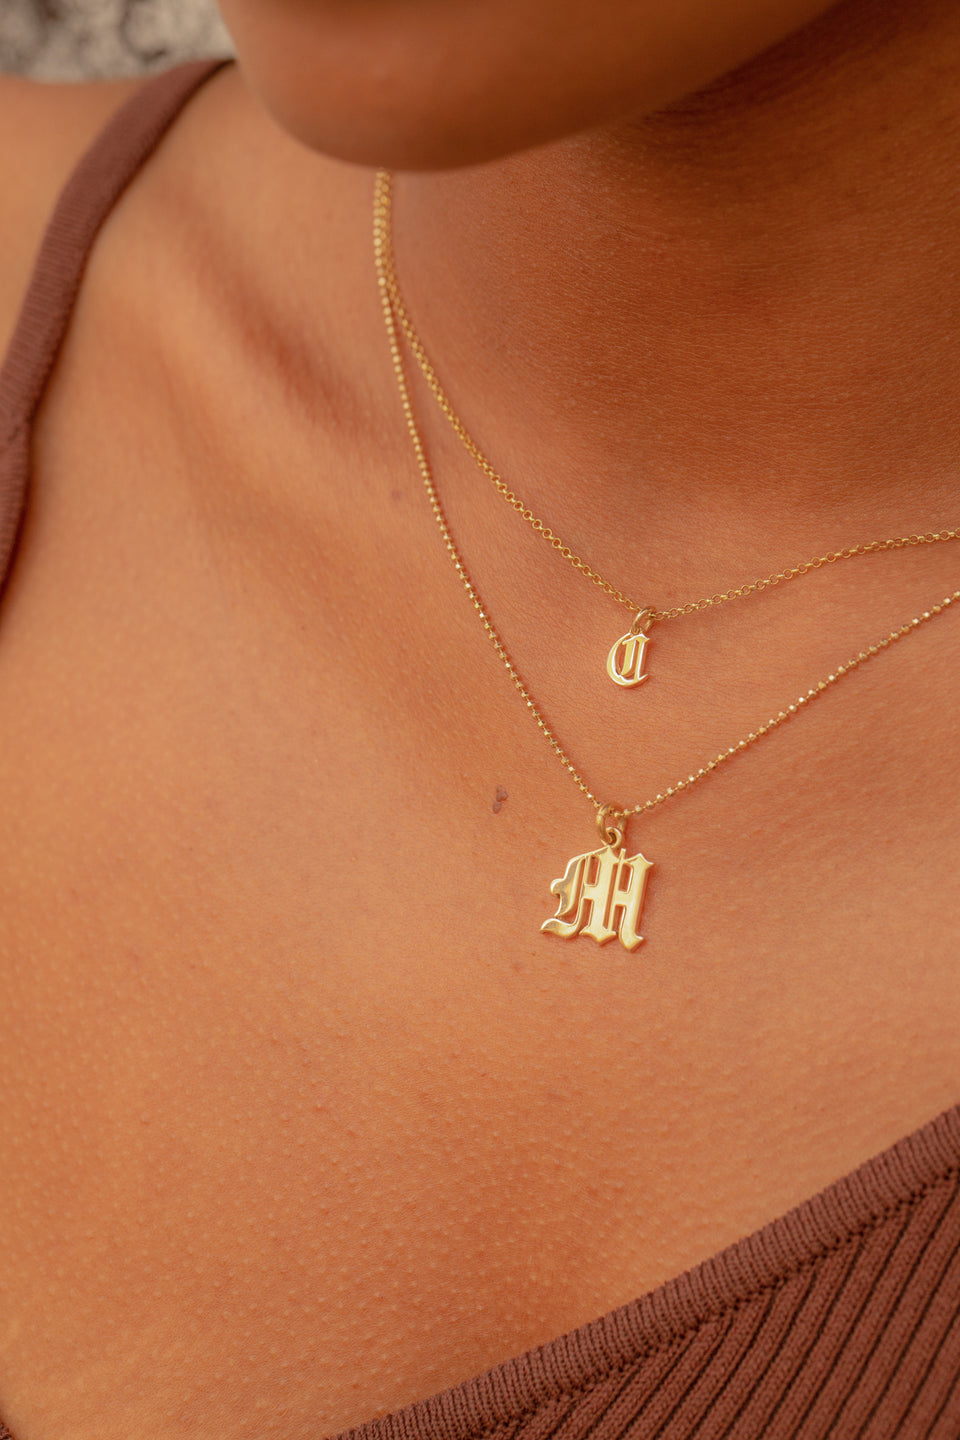 Baby Initial Necklace